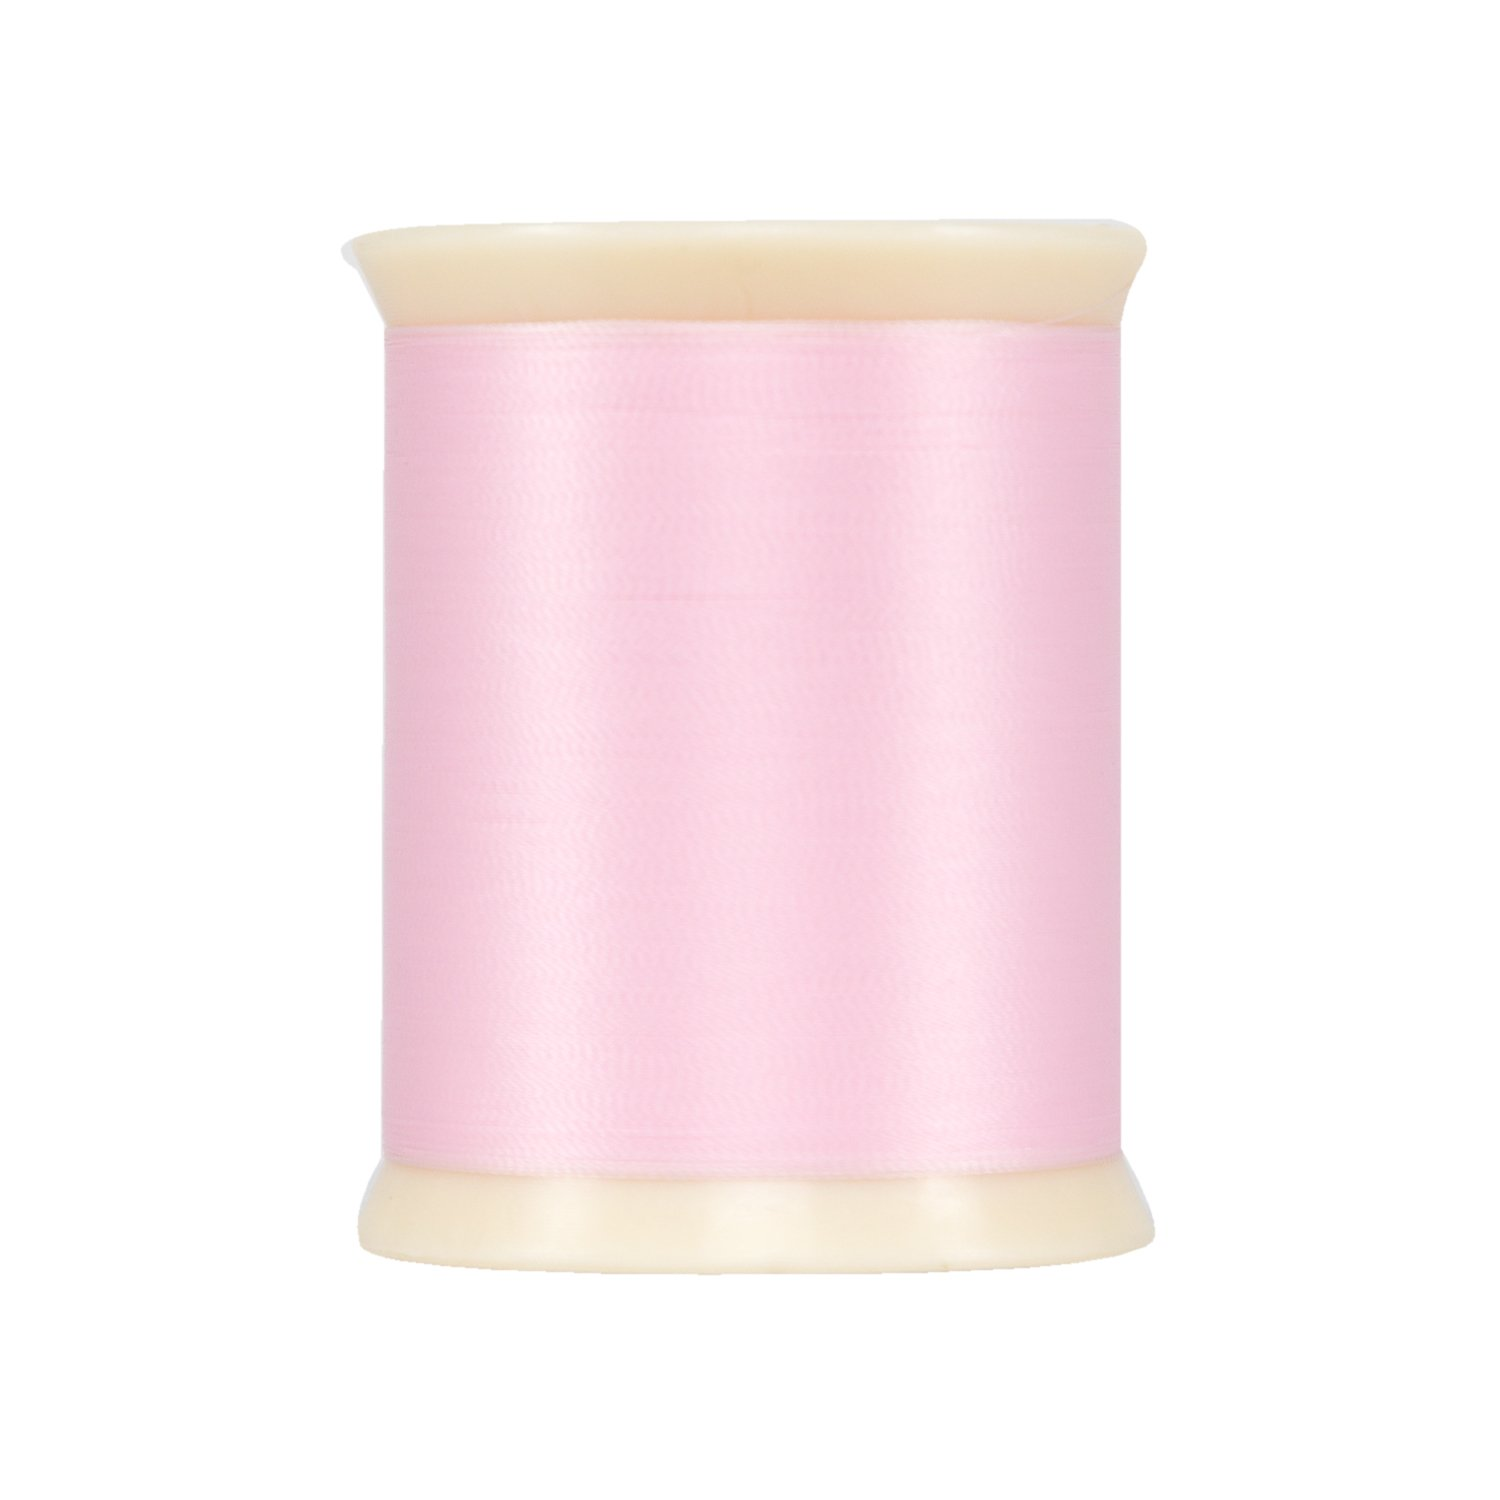 #7014 Baby Pink MicroQuilter 800 yd spool